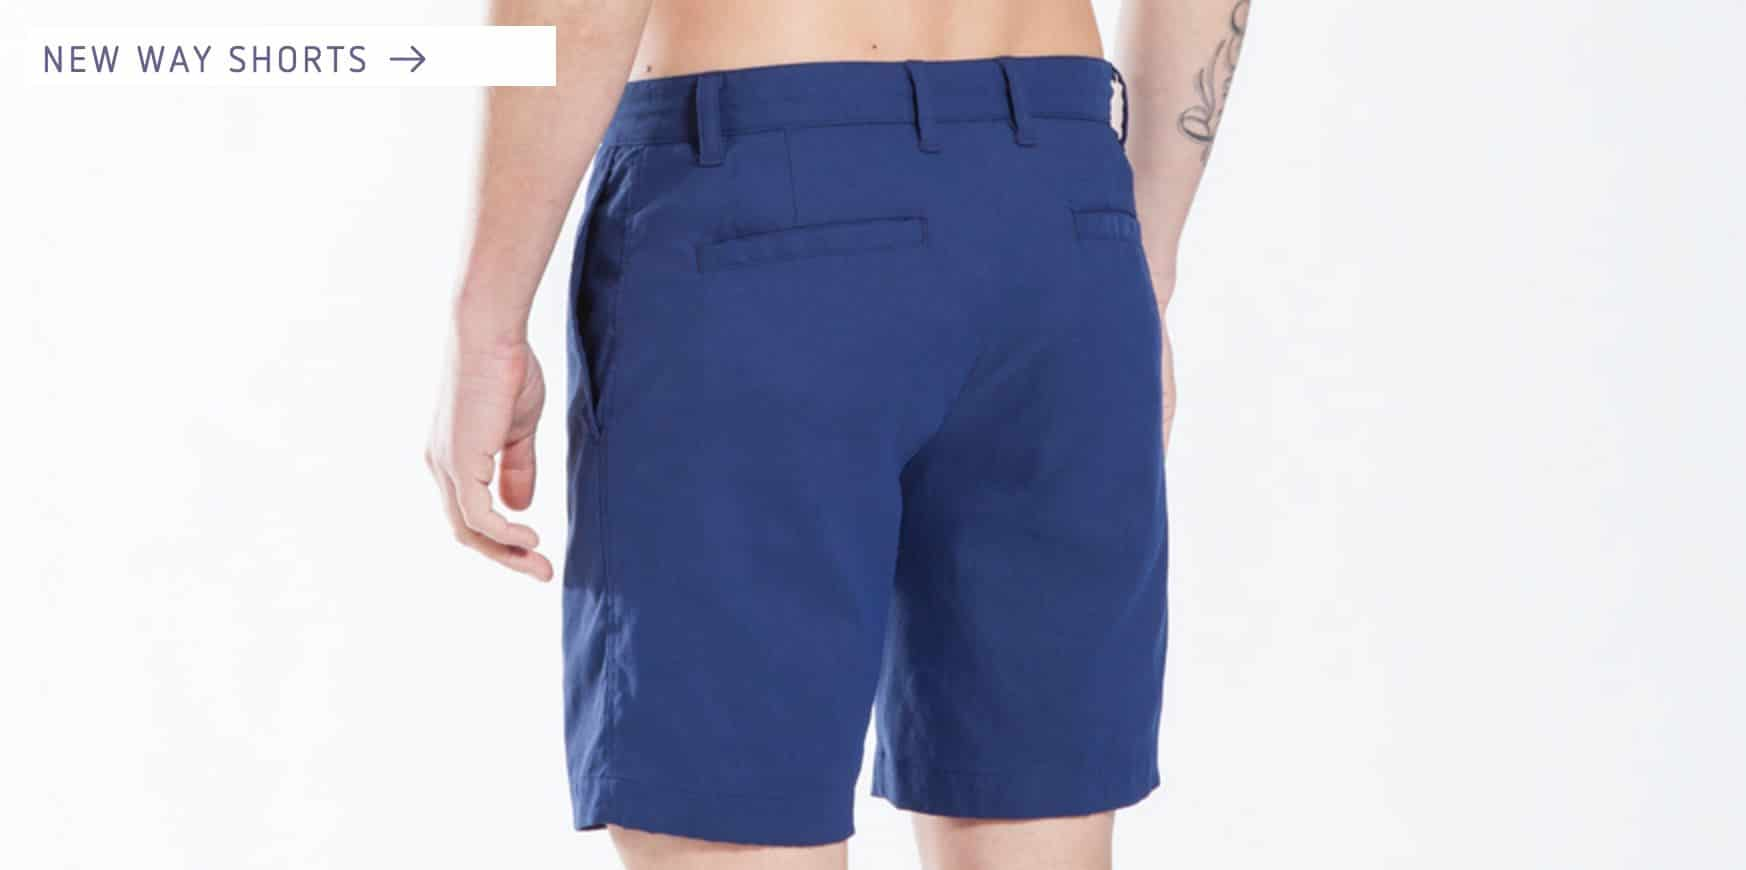 OUTLIER_New_Way_Shorts review